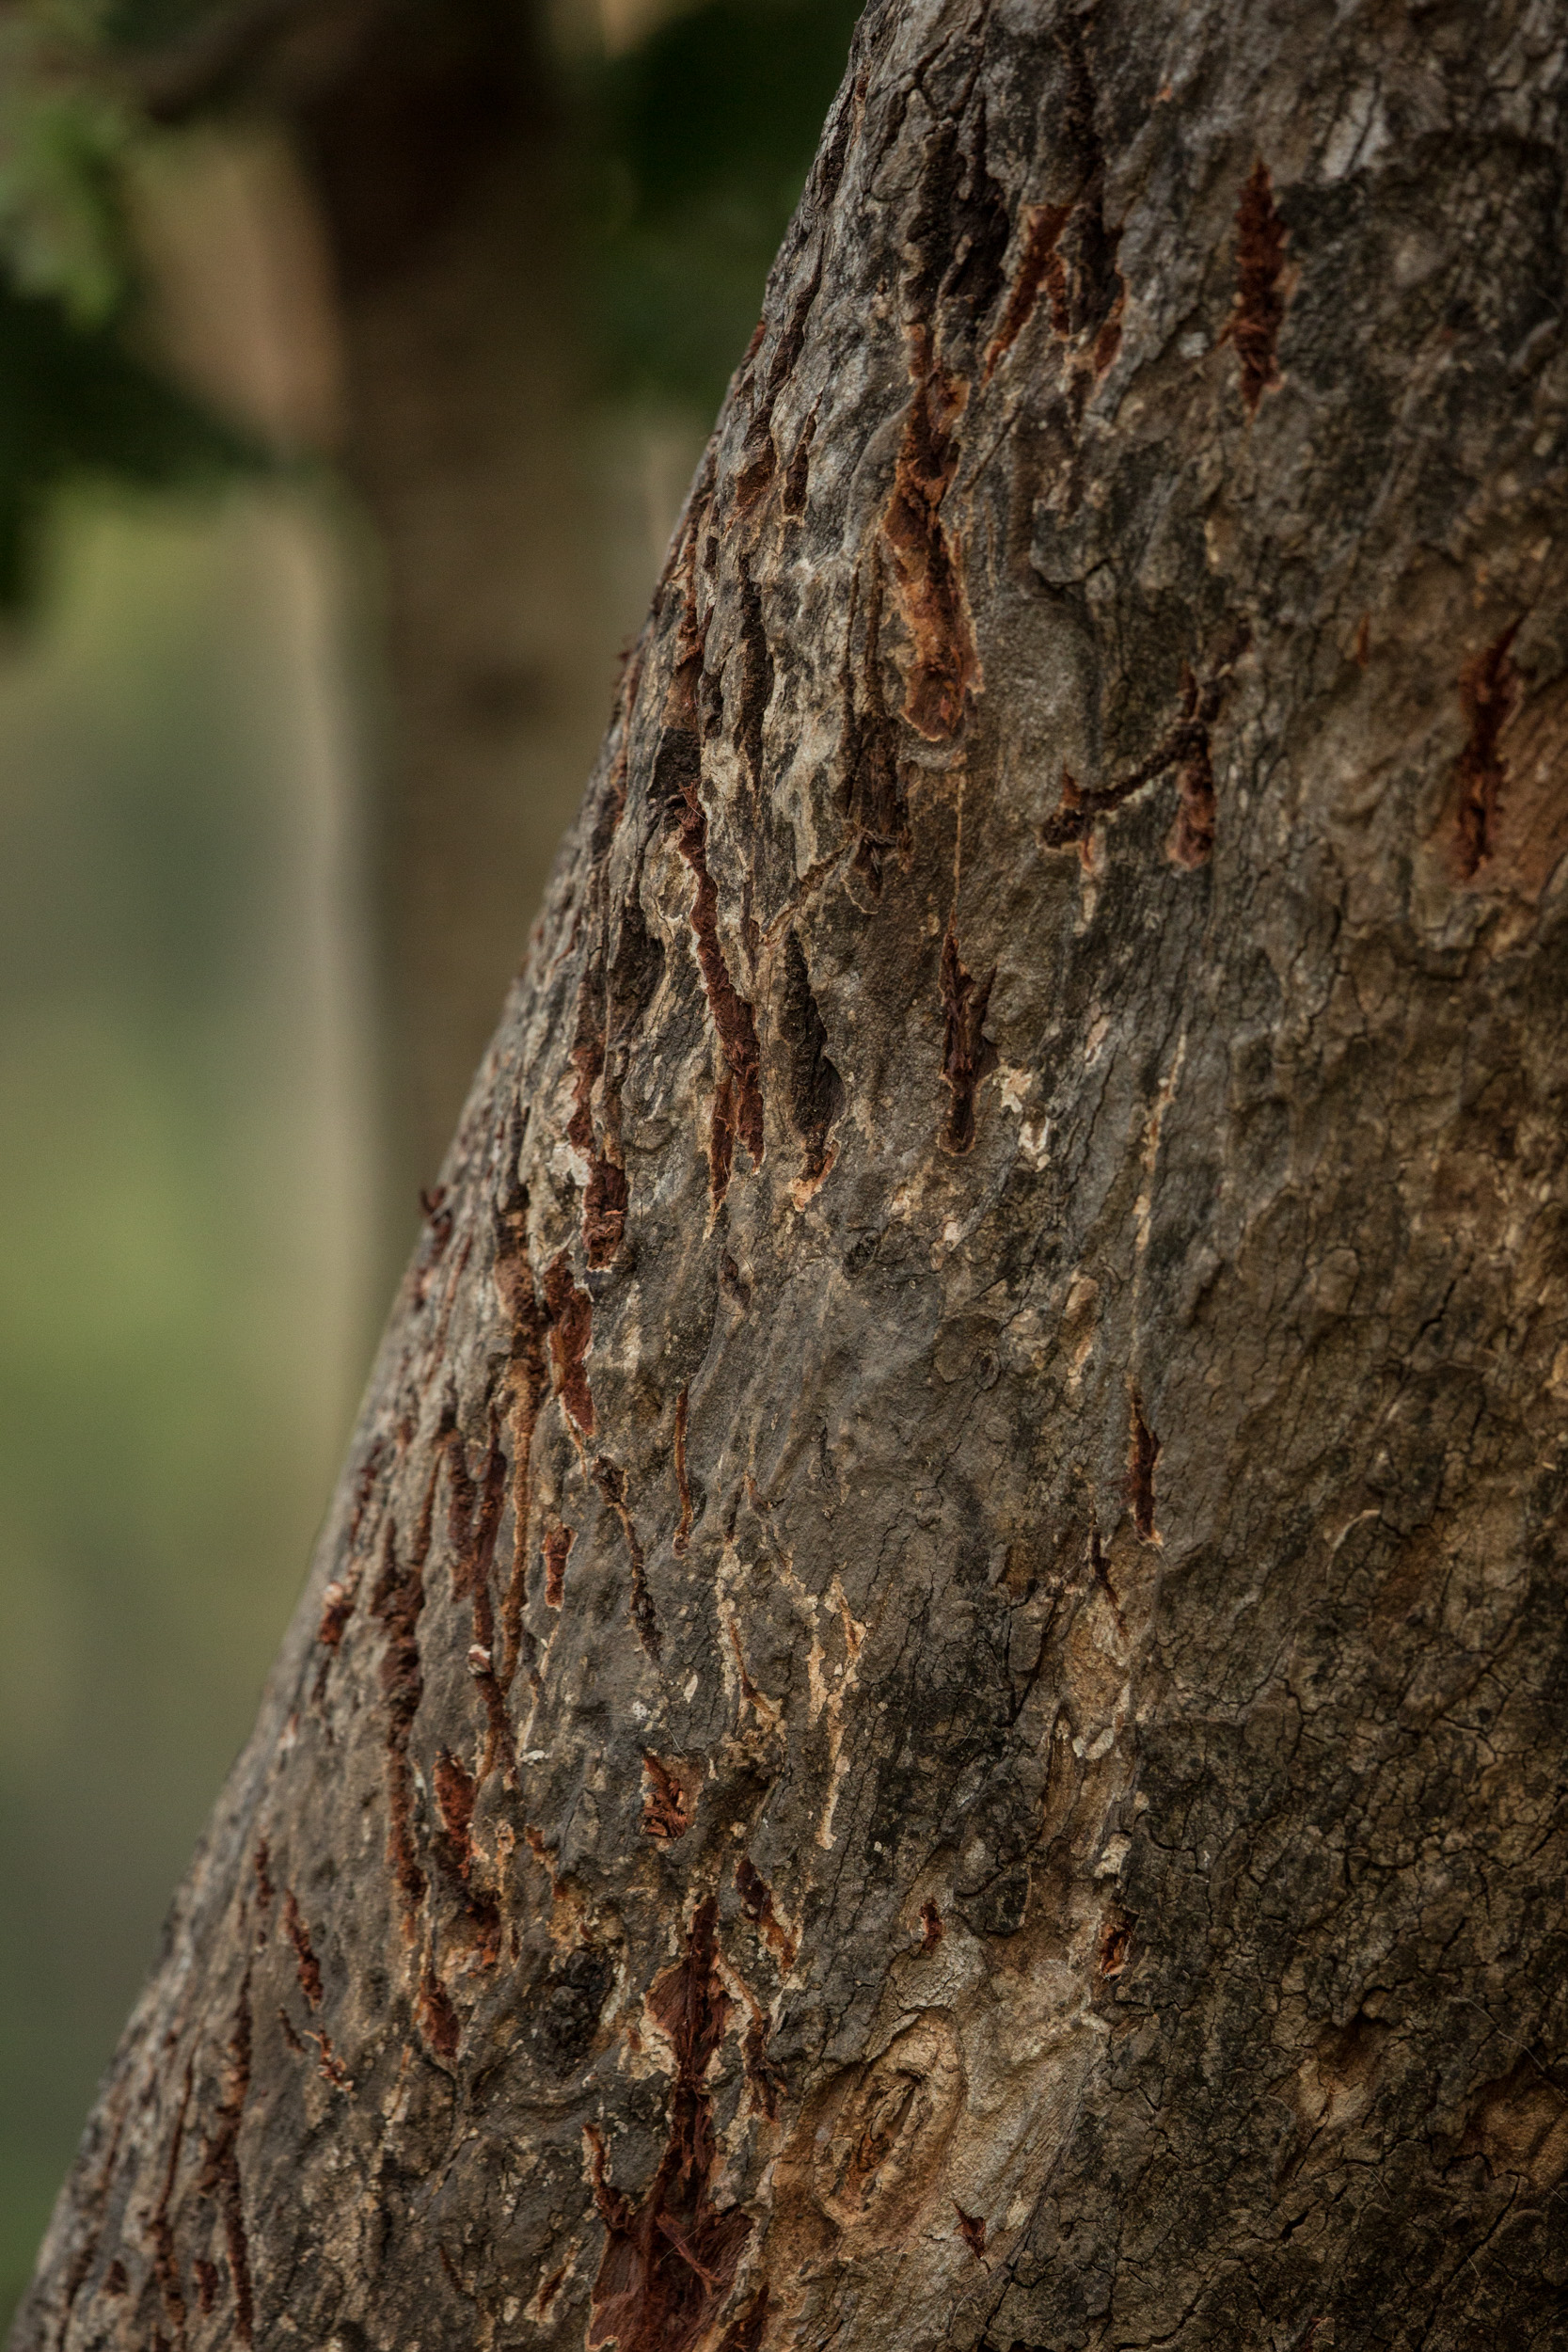 Tiger claw marks on a tree... we are truly in tiger territory. CLICK IMAGE for full screen.